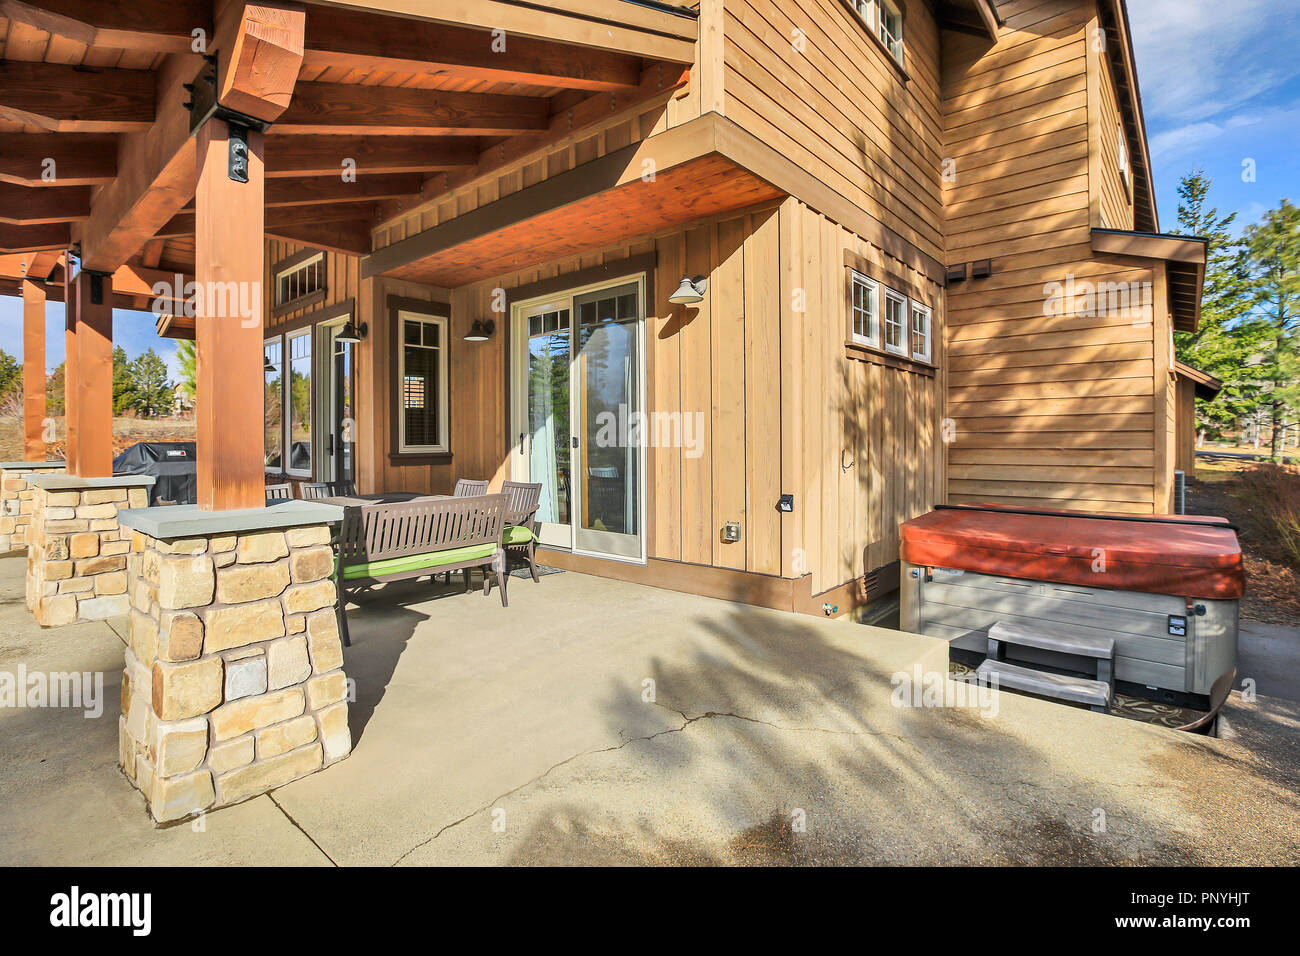 Wooden Home Exterior With Spacious Back Patio, Hot Tub And Barbecue.